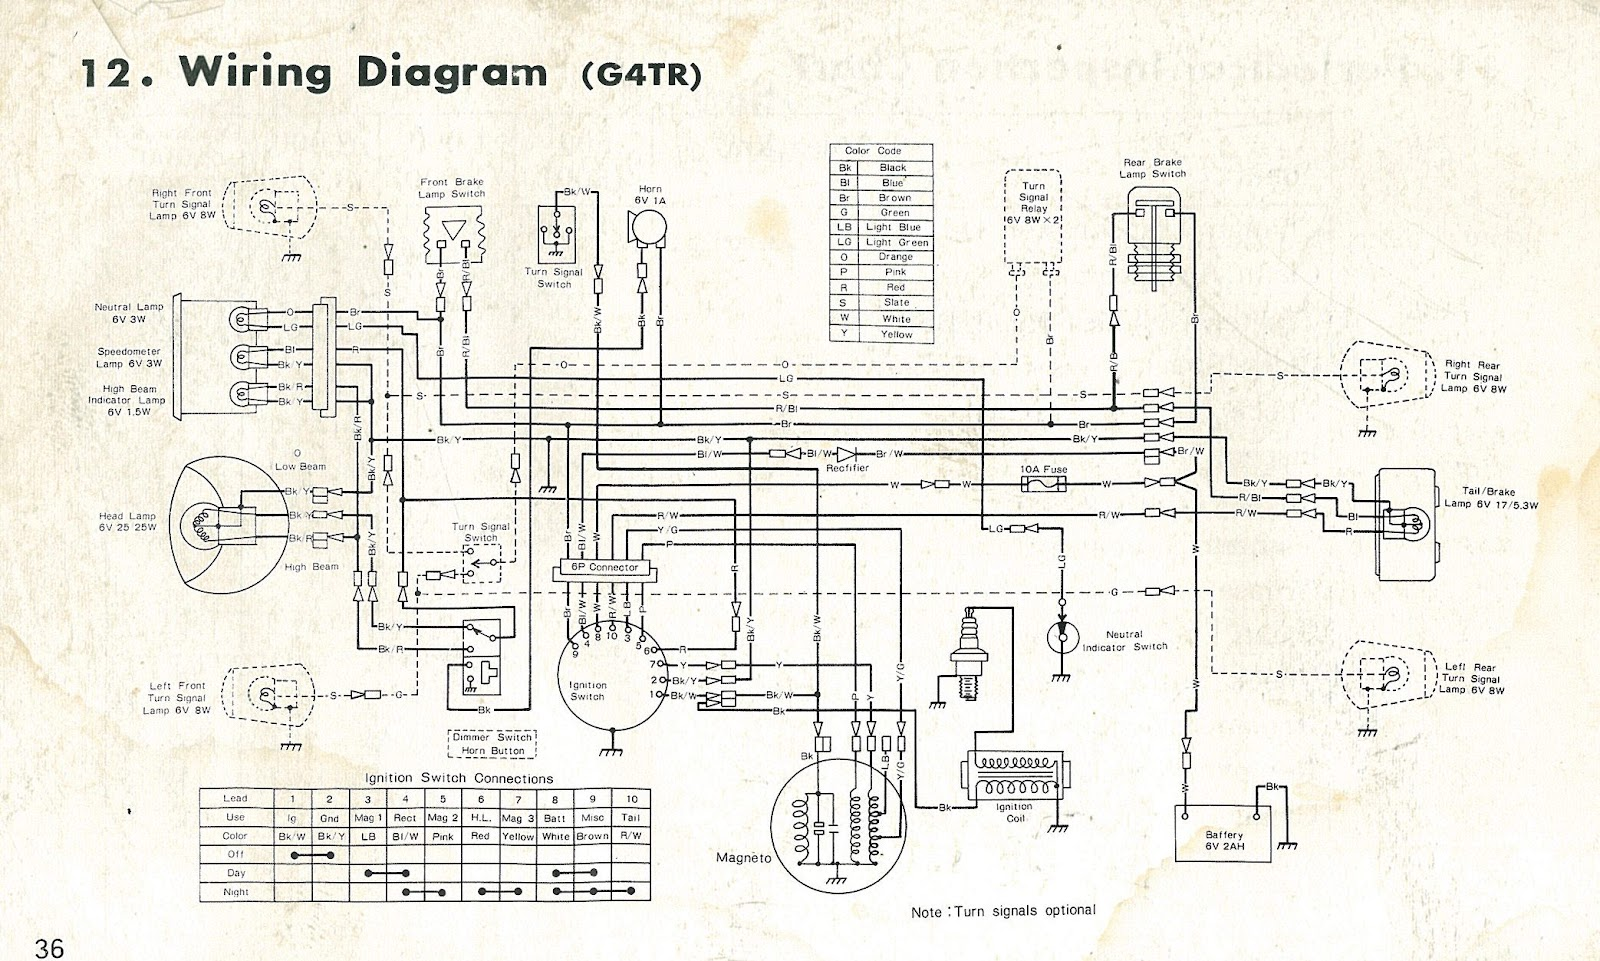 Kawasaki+G4TR+Wiring+Diagram+1972 restoring a 1972 kawasaki g4 tr b motorcycle wiring diagram kawasaki wiring diagrams at gsmportal.co